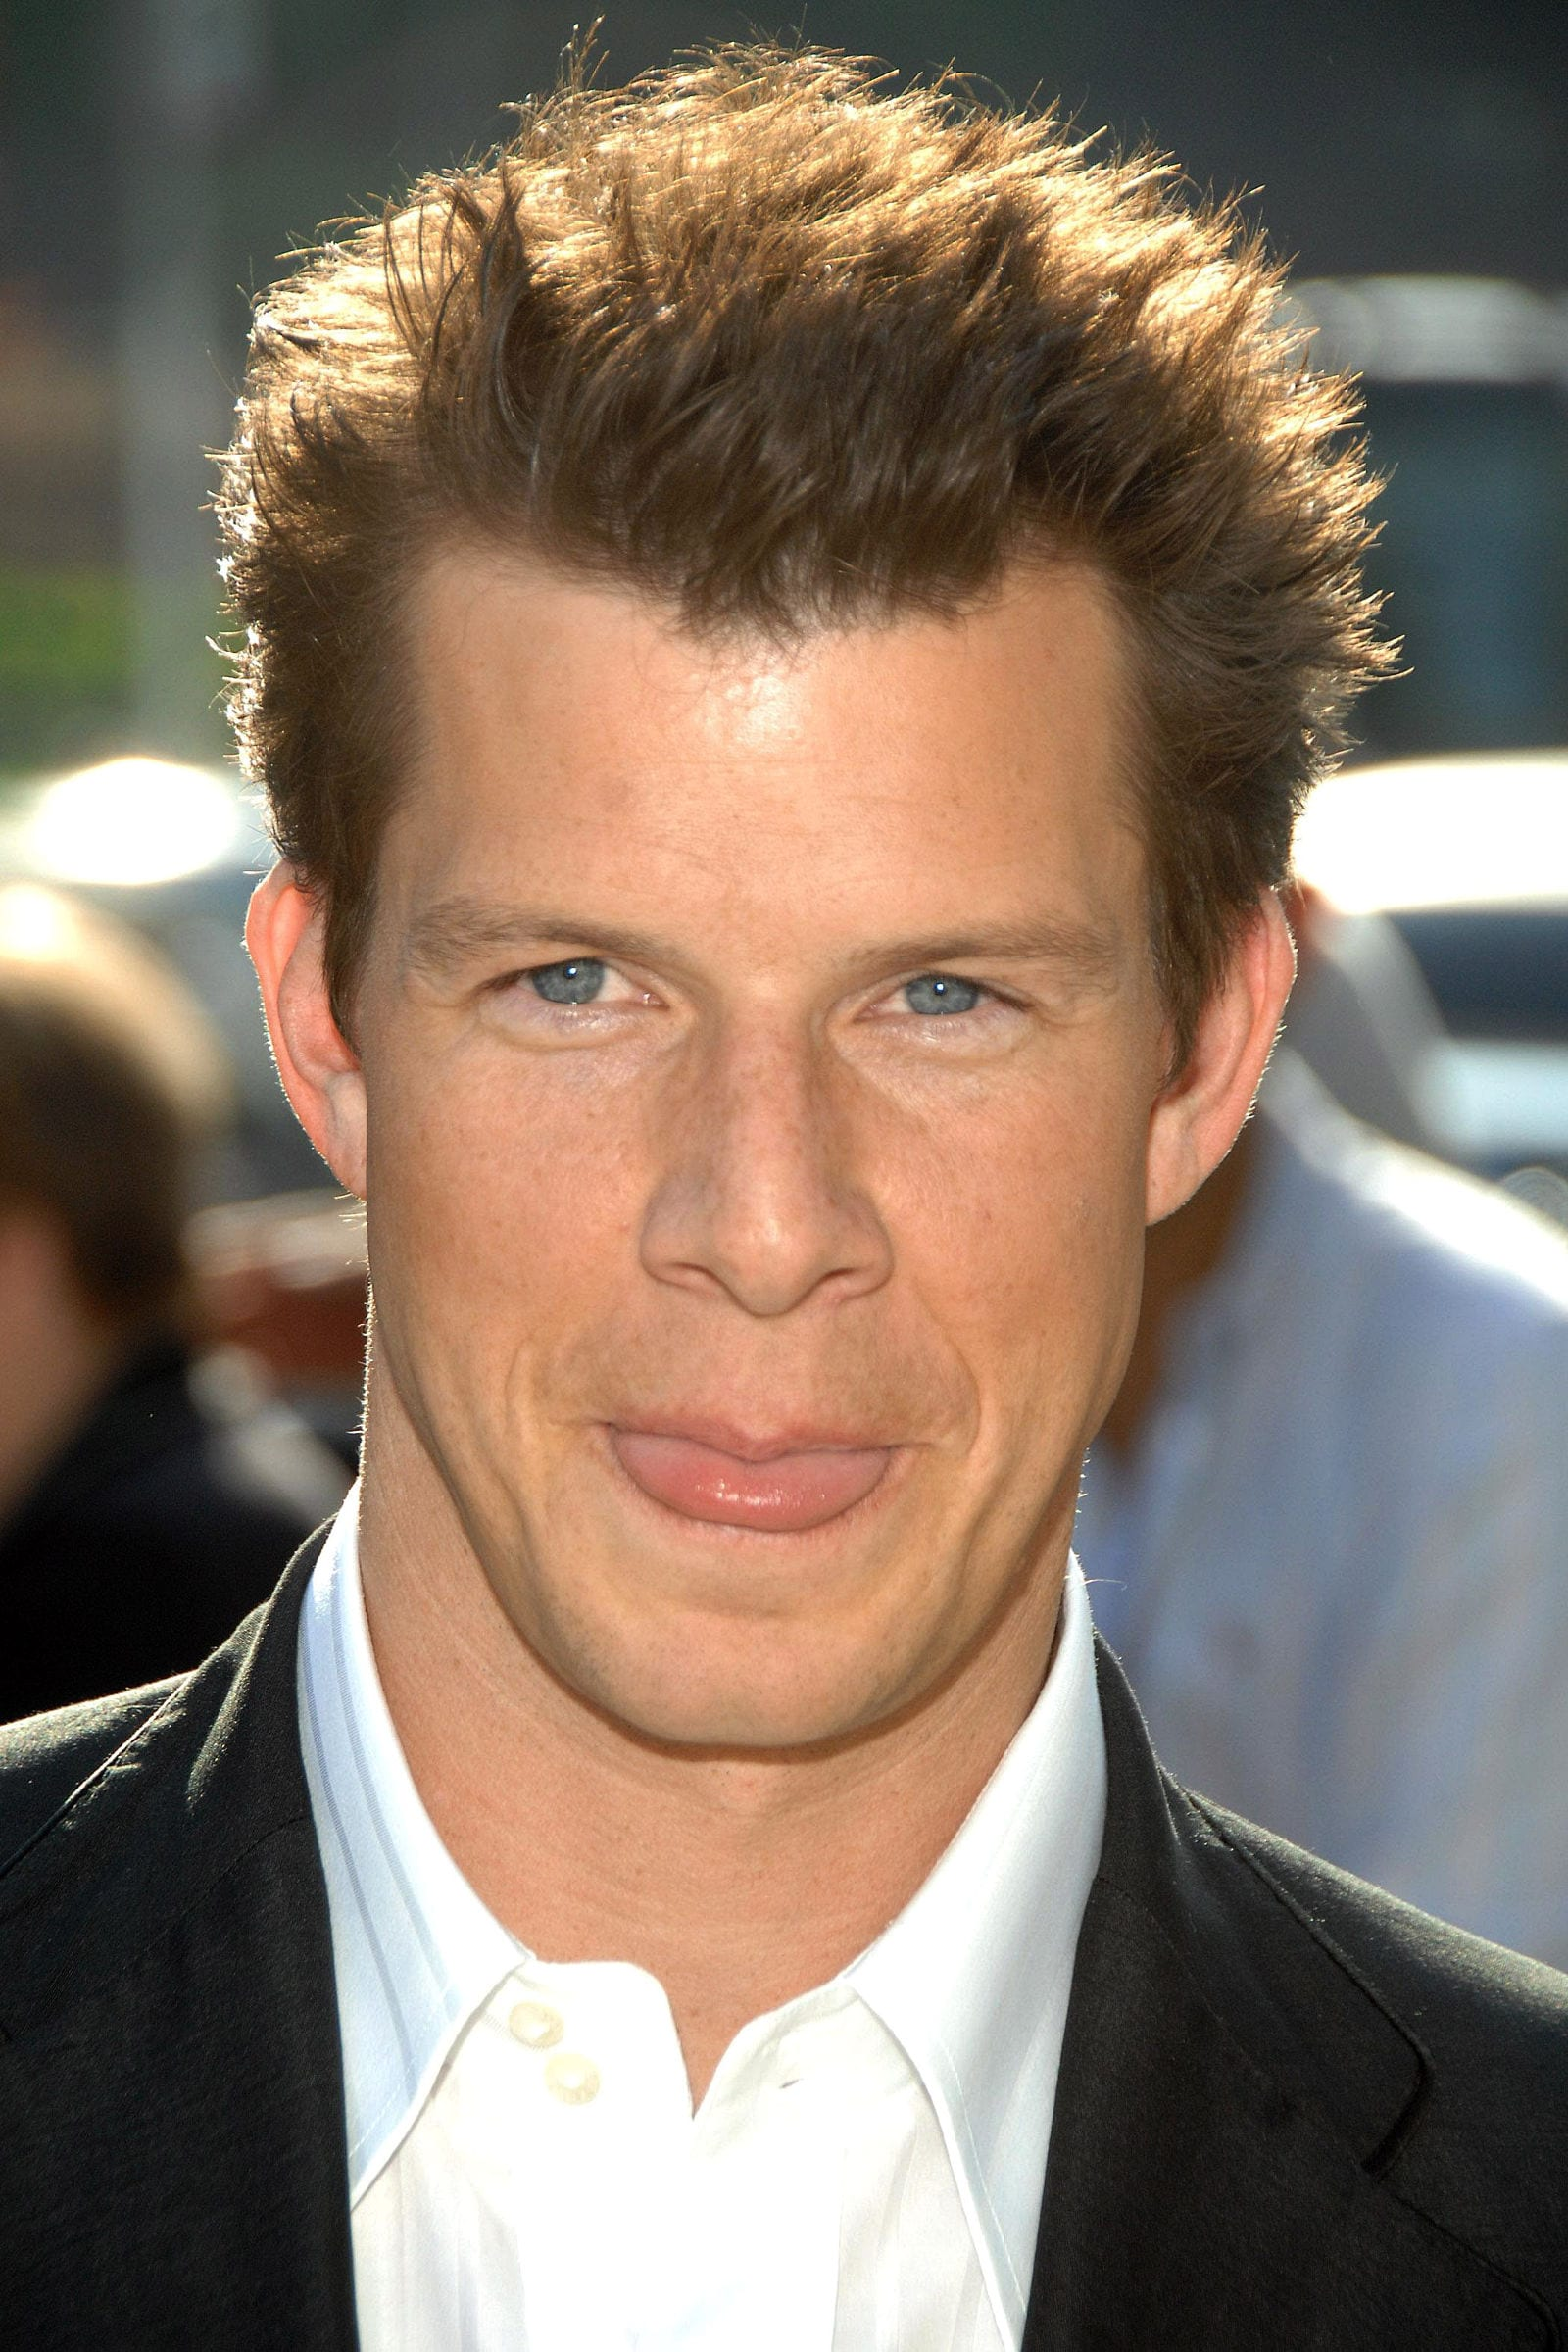 Eric Mabius blow out hairstyle by Everett Collection